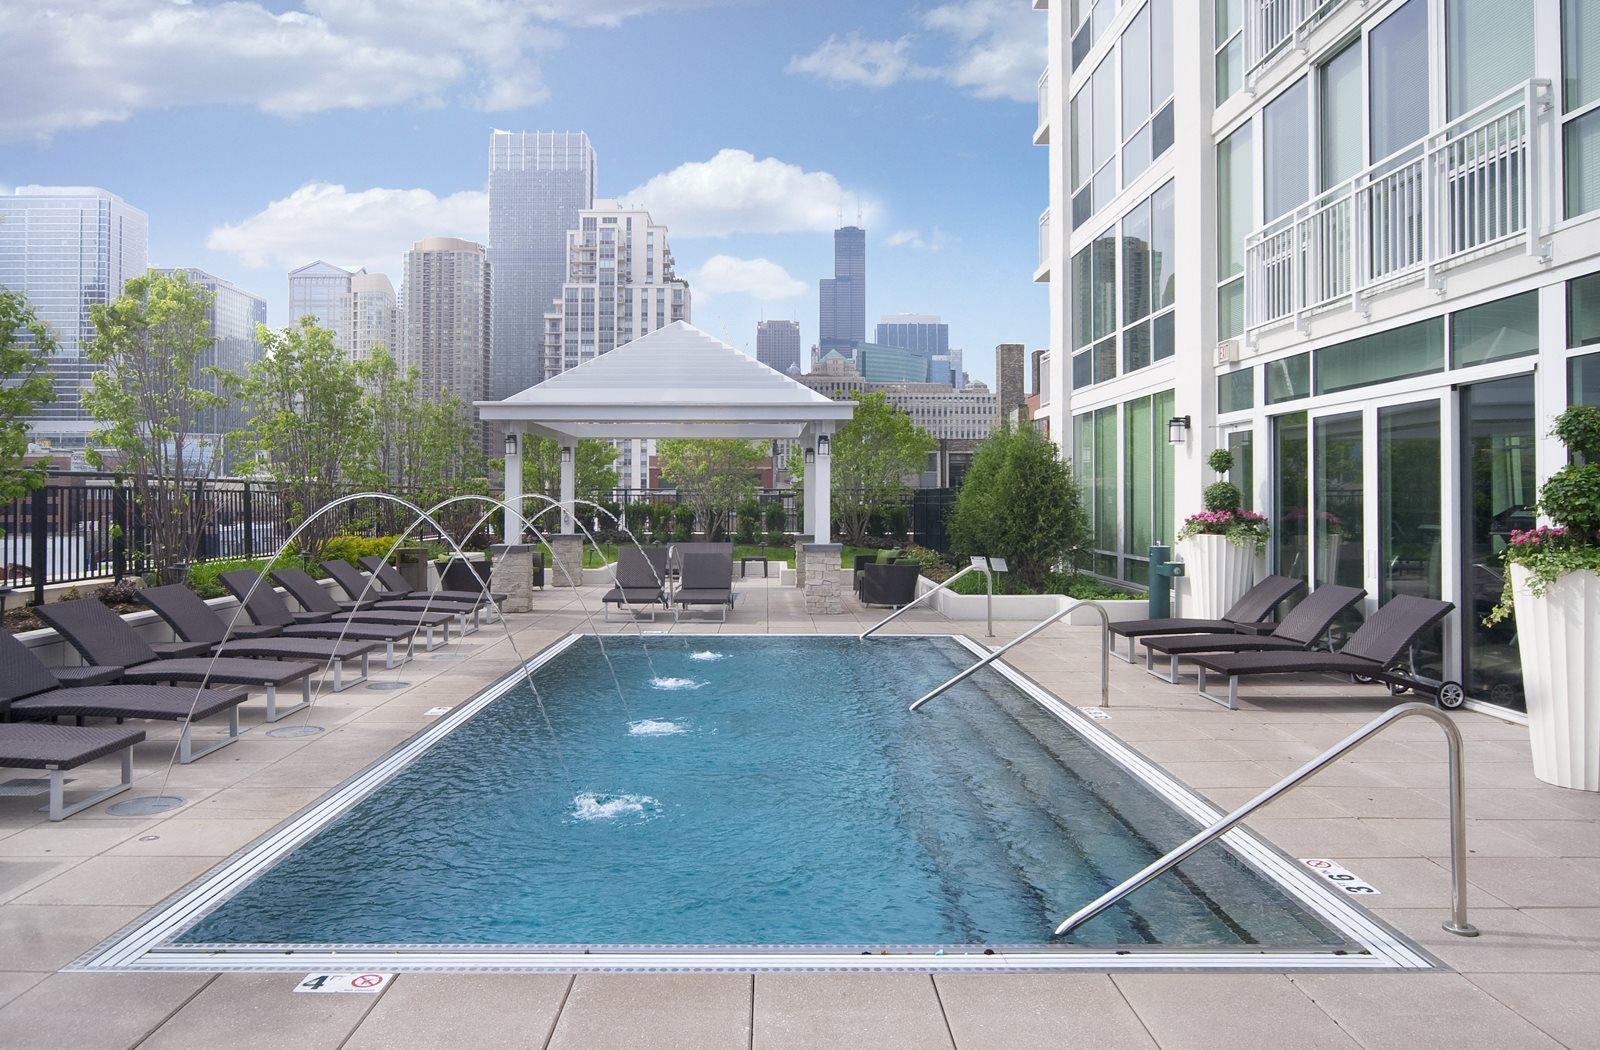 Resort-Style Pool at Flair Tower, Chicago, IL, 60654 has Resort-Style Pool